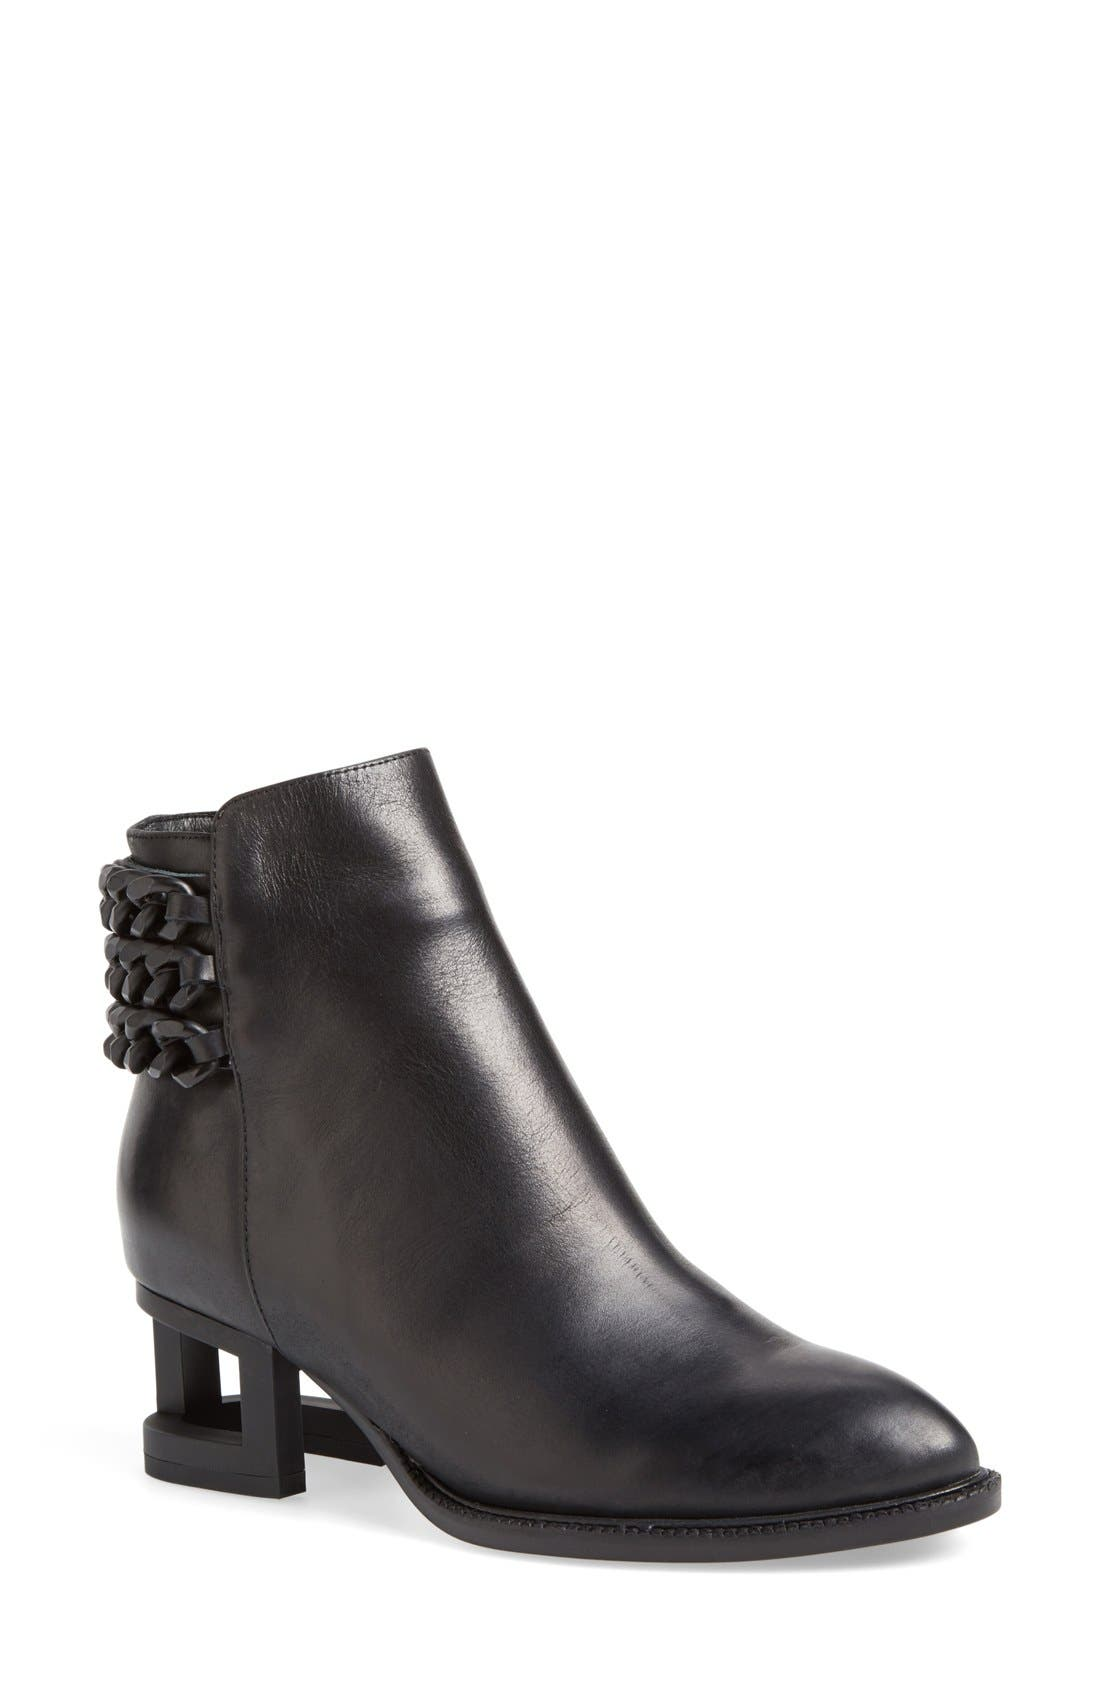 Main Image - Jeffrey Campbell 'Benicio' Ankle Boot (Women)